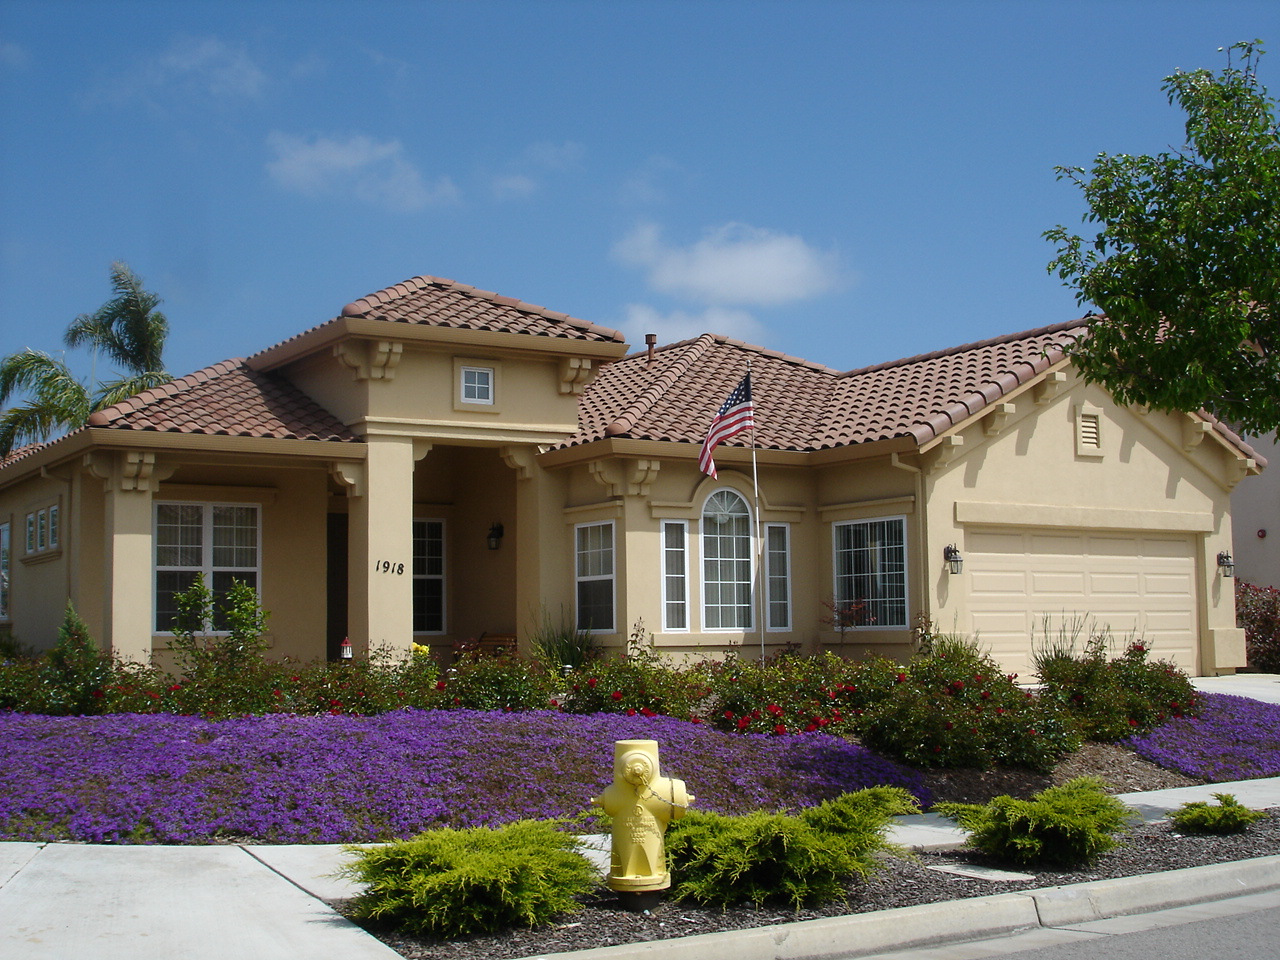 File ranch style home in salinas california jpg wikipedia Styles of houses